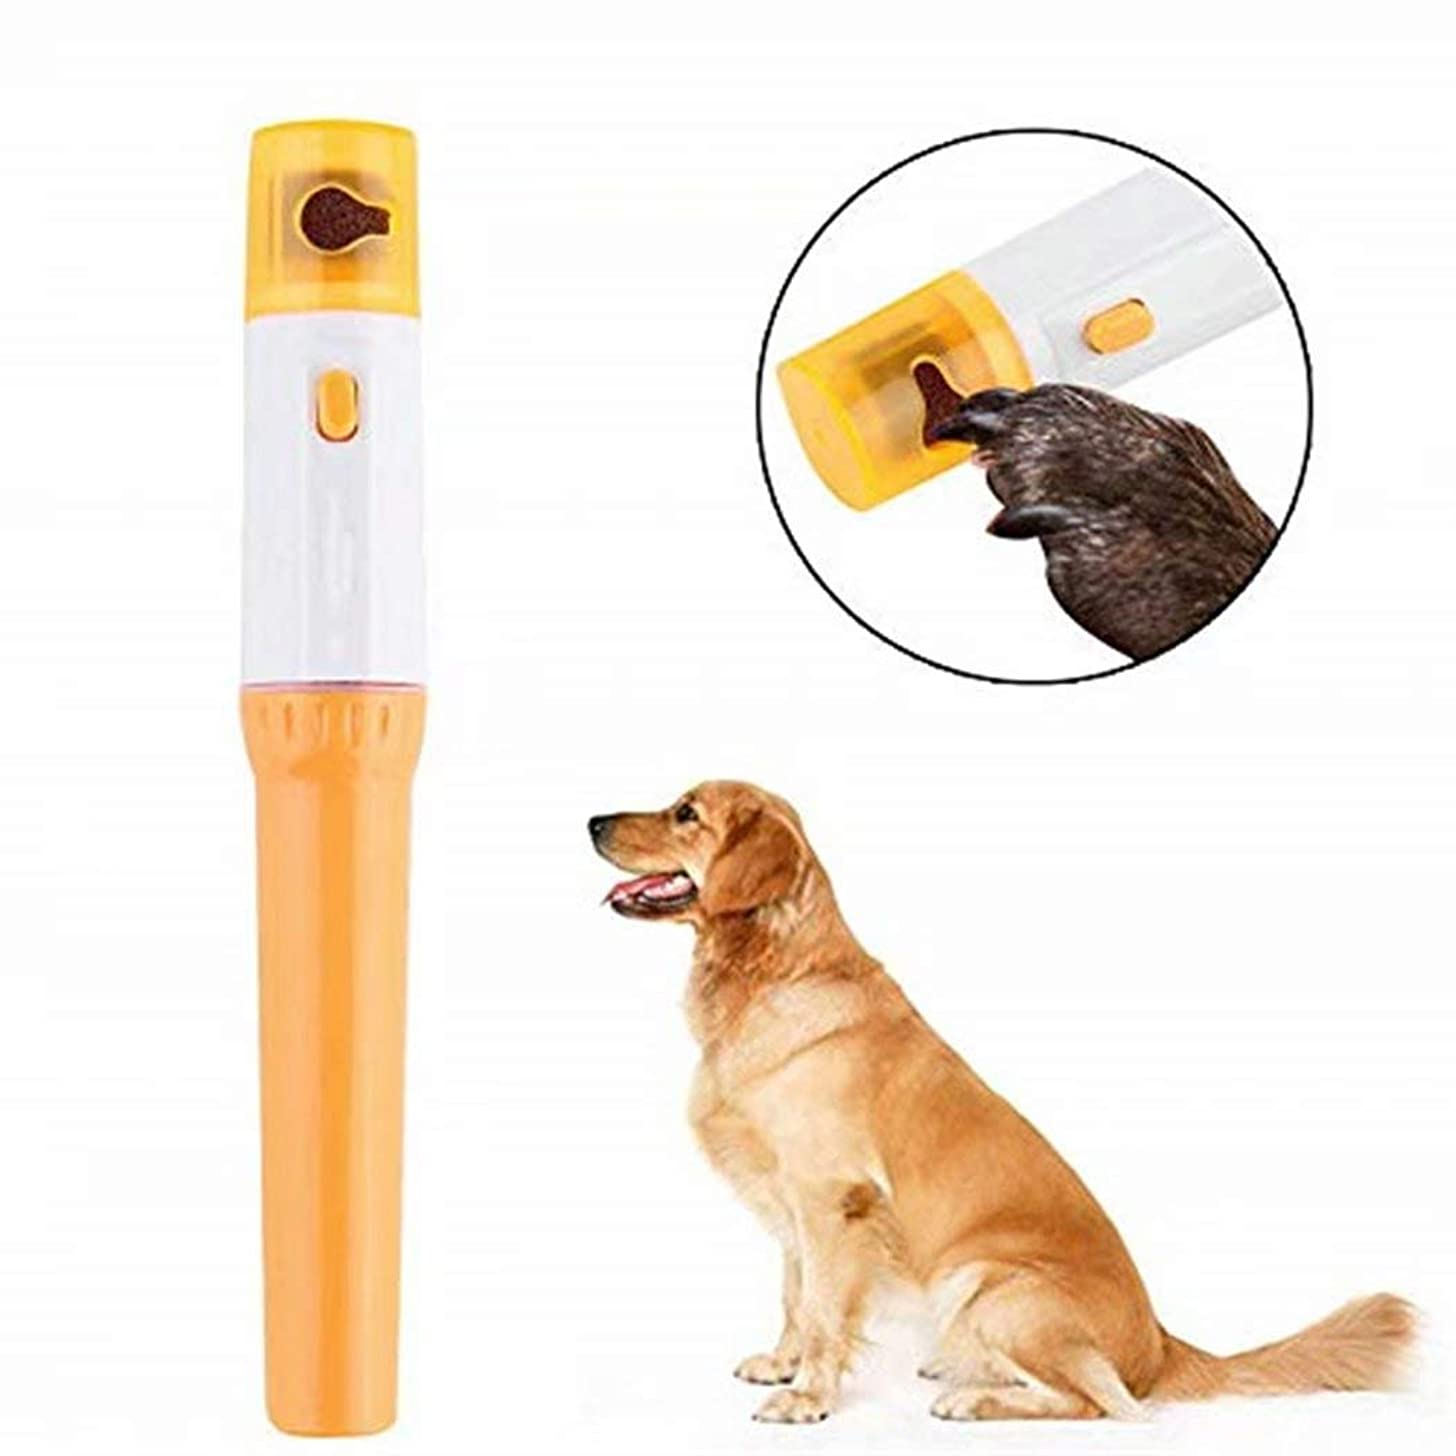 TMROW Nail Grinder for Dogs, Mini Electric pet Nail Clippers pet Nail Grinder and Trimmer pet Pedicure